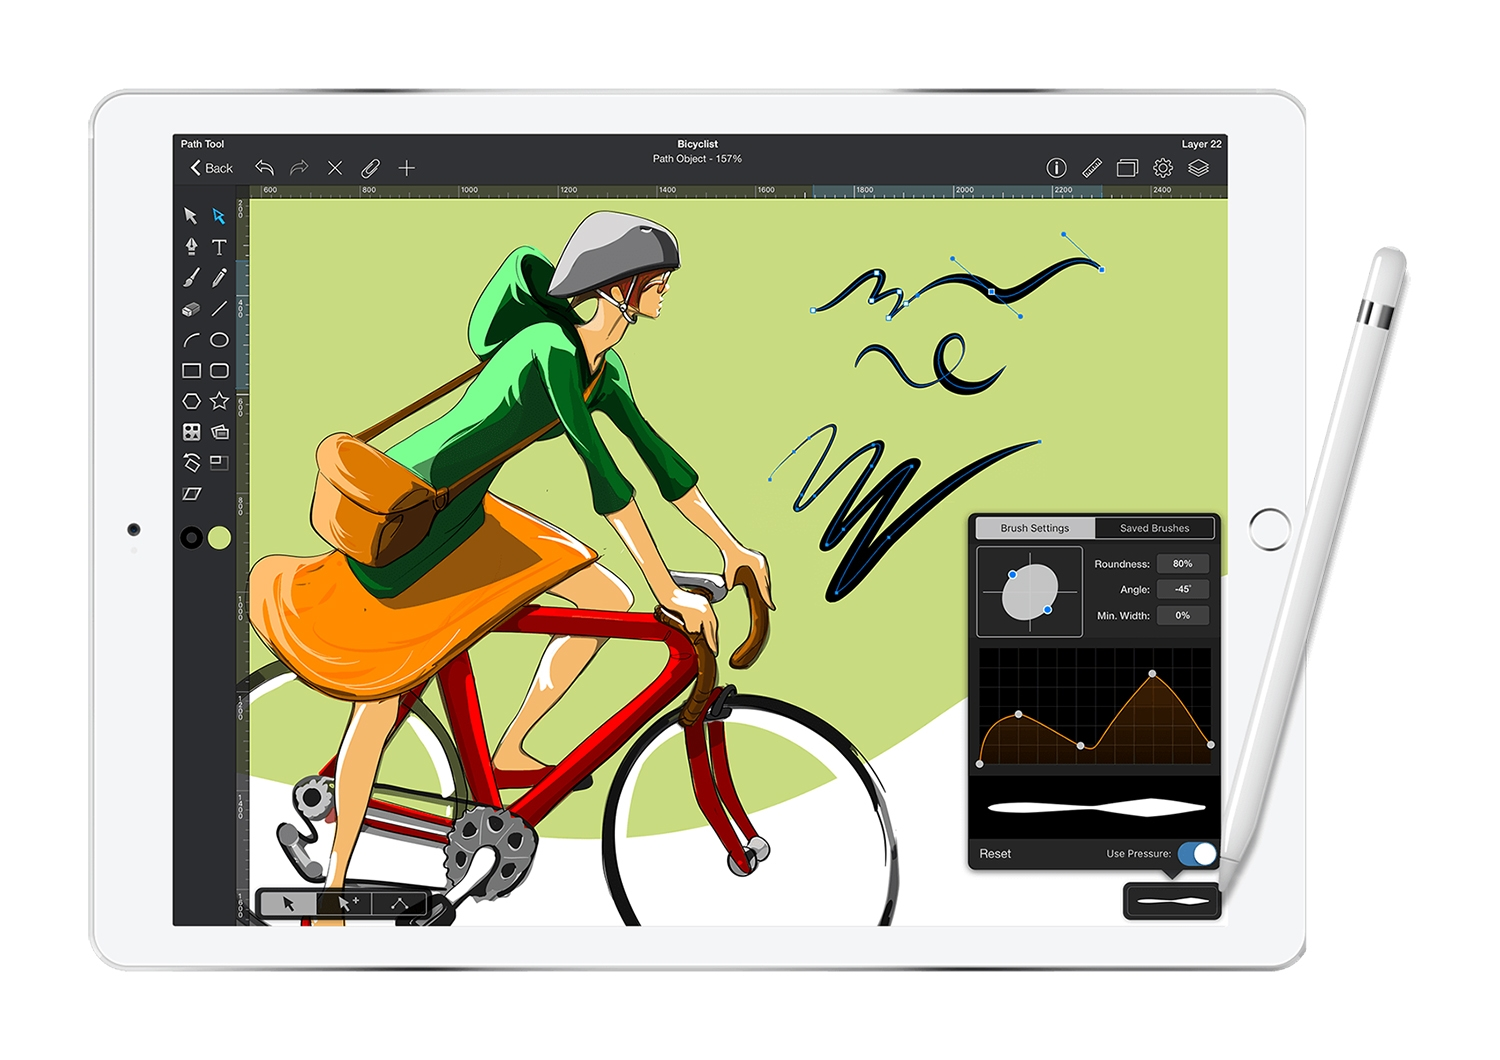 Adobe Photoshop versione completa per iPad